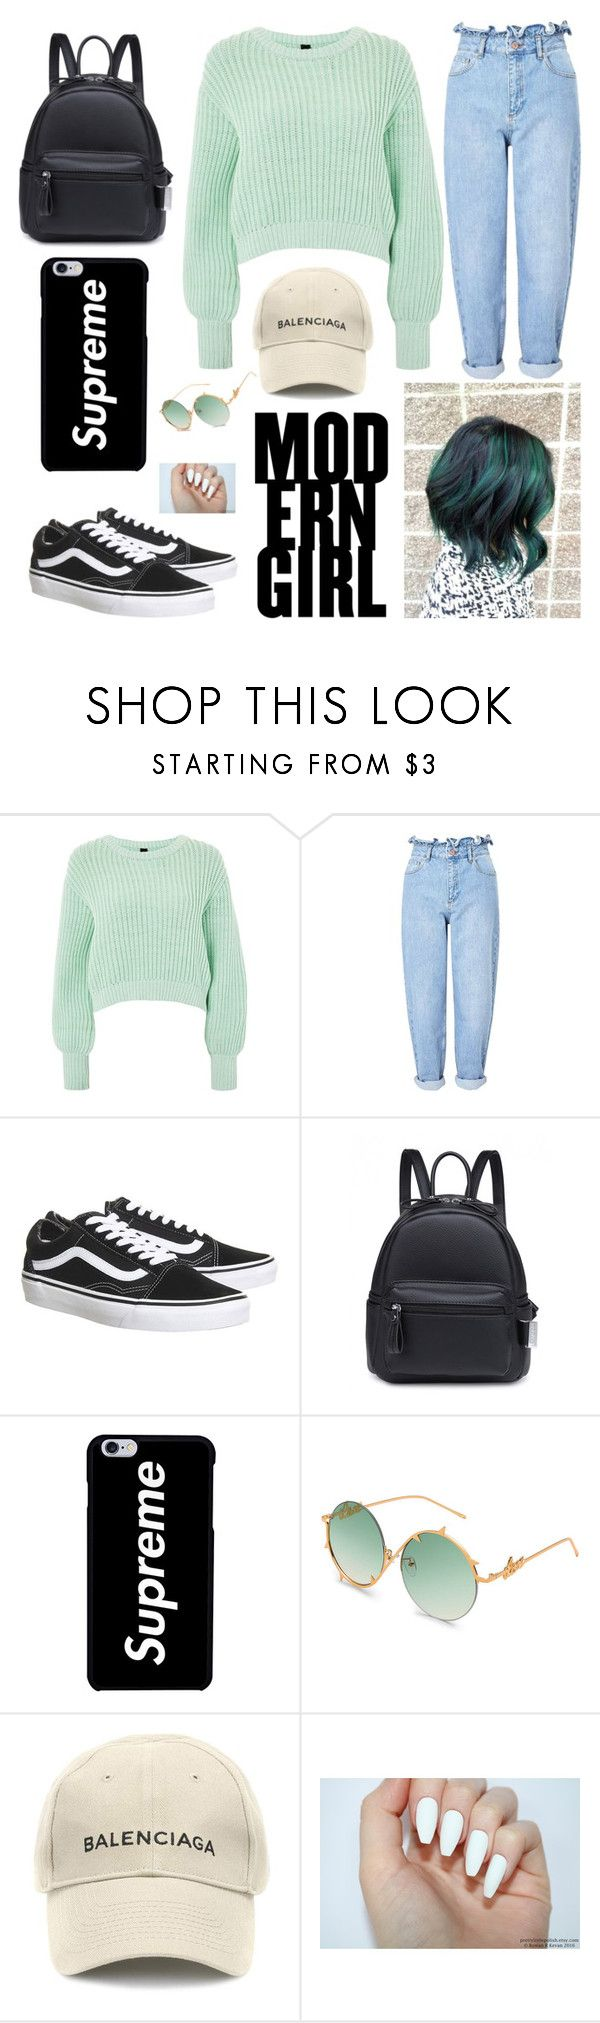 """Modern Girl"" by chalotteleah on Polyvore featuring Topshop, Miss Selfridge, Balenciaga and modern"